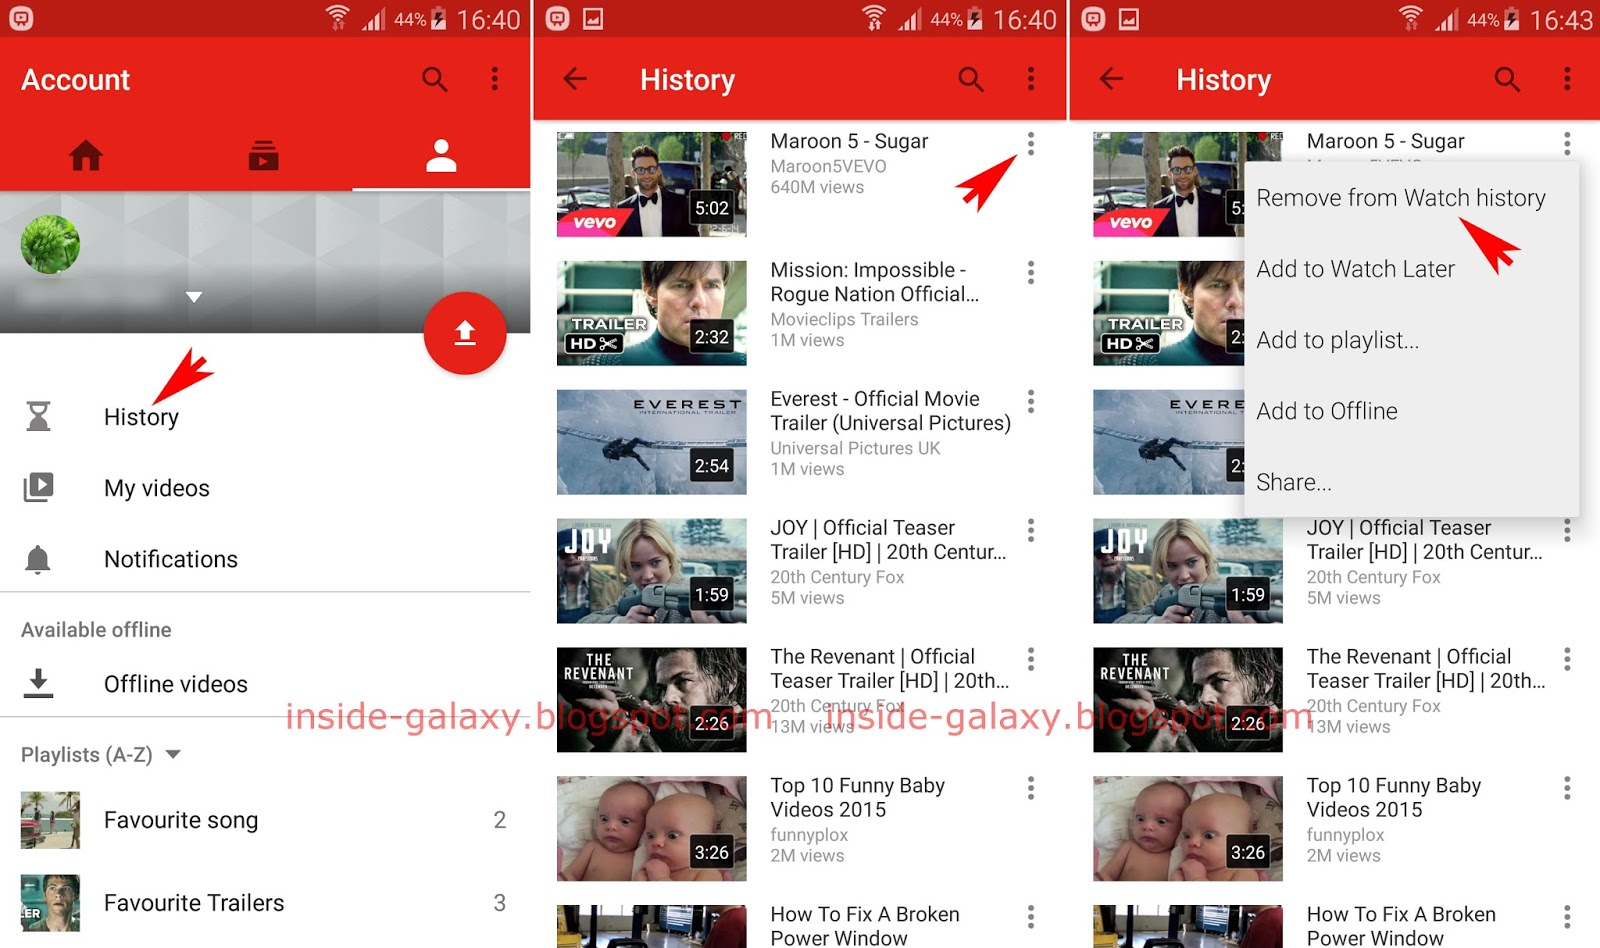 Samsung galaxy s4 how to remove videos from watch history in method 1 from the watch history menu within the youtube app you can easily delete a single or all videos from watch history while youre signing in with a ccuart Image collections